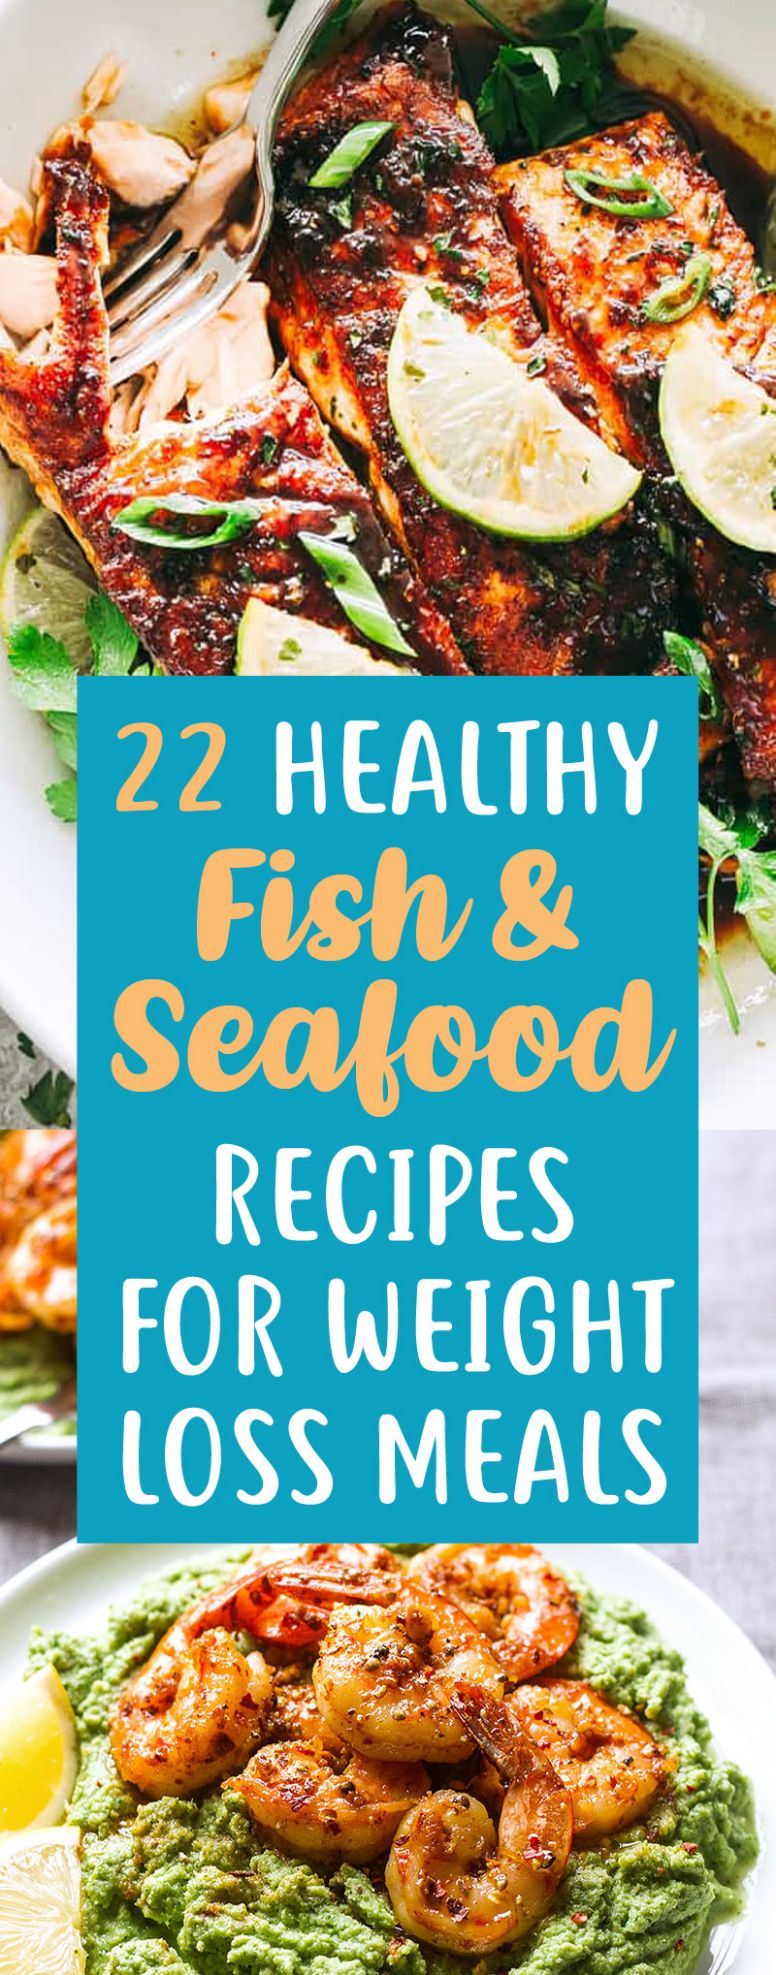 9 Fish & Seafood Recipes That Make An Easy Delicious Weight Loss ...